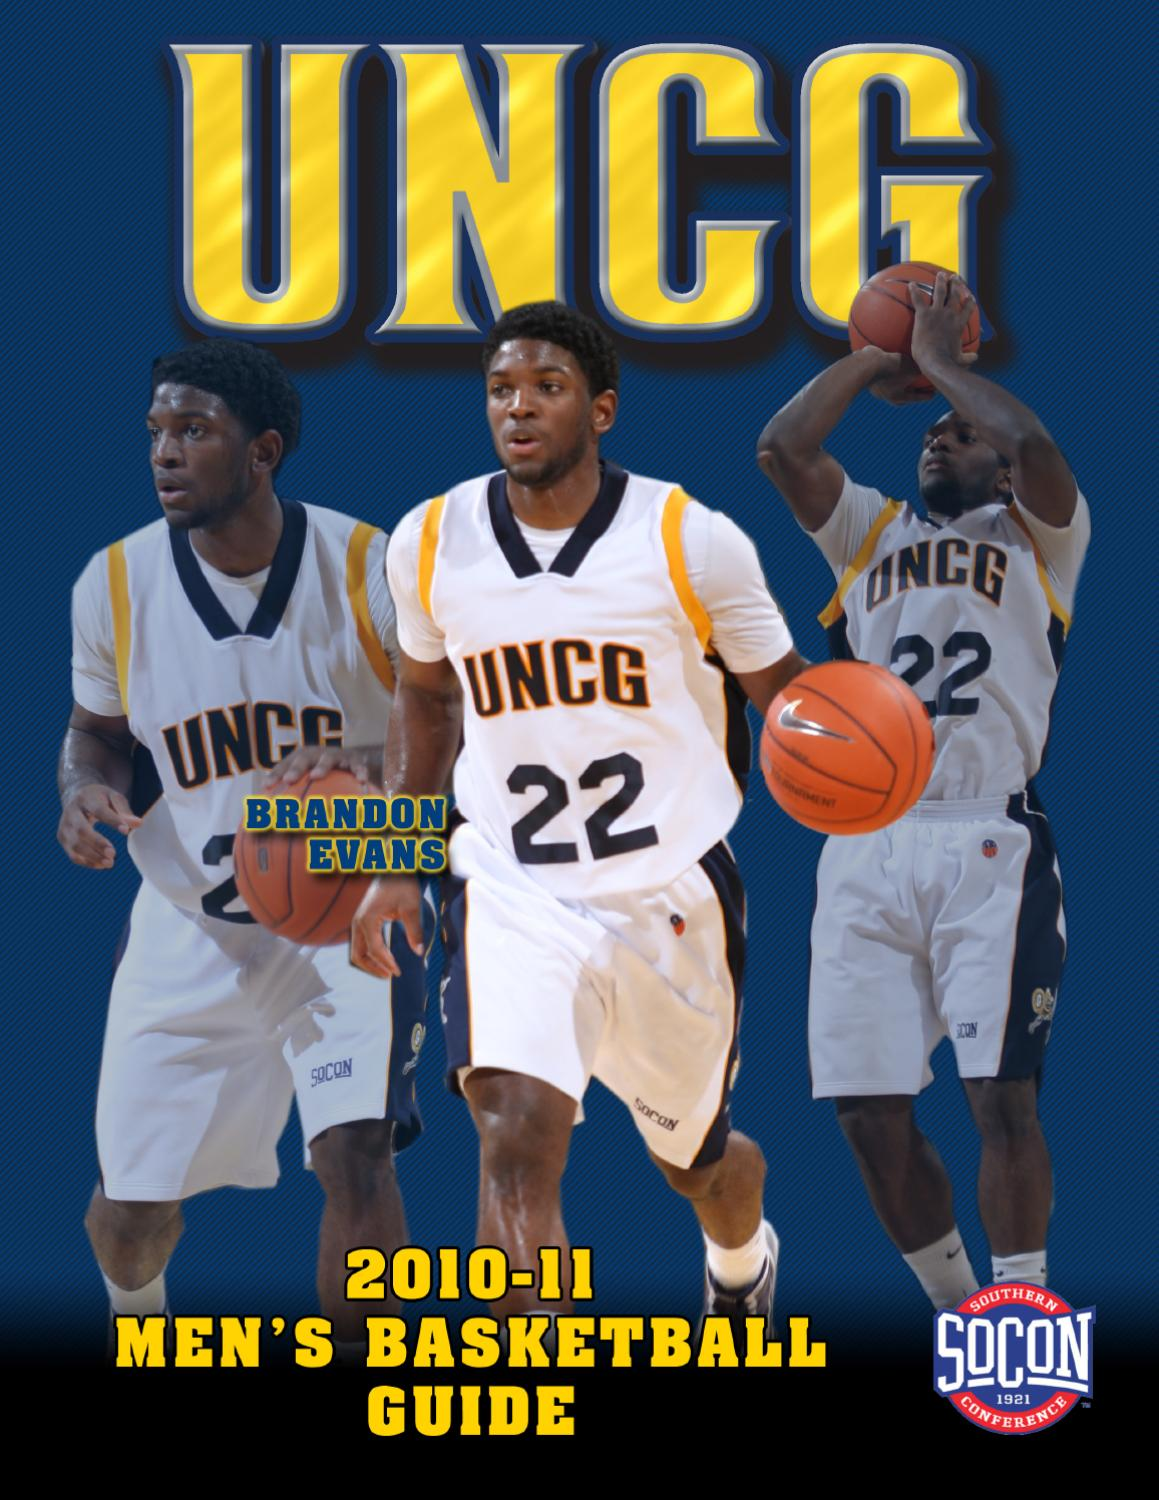 2010-11 UNCG Men s Basketball Guide by UNCG Athletics - issuu 78199c8c8